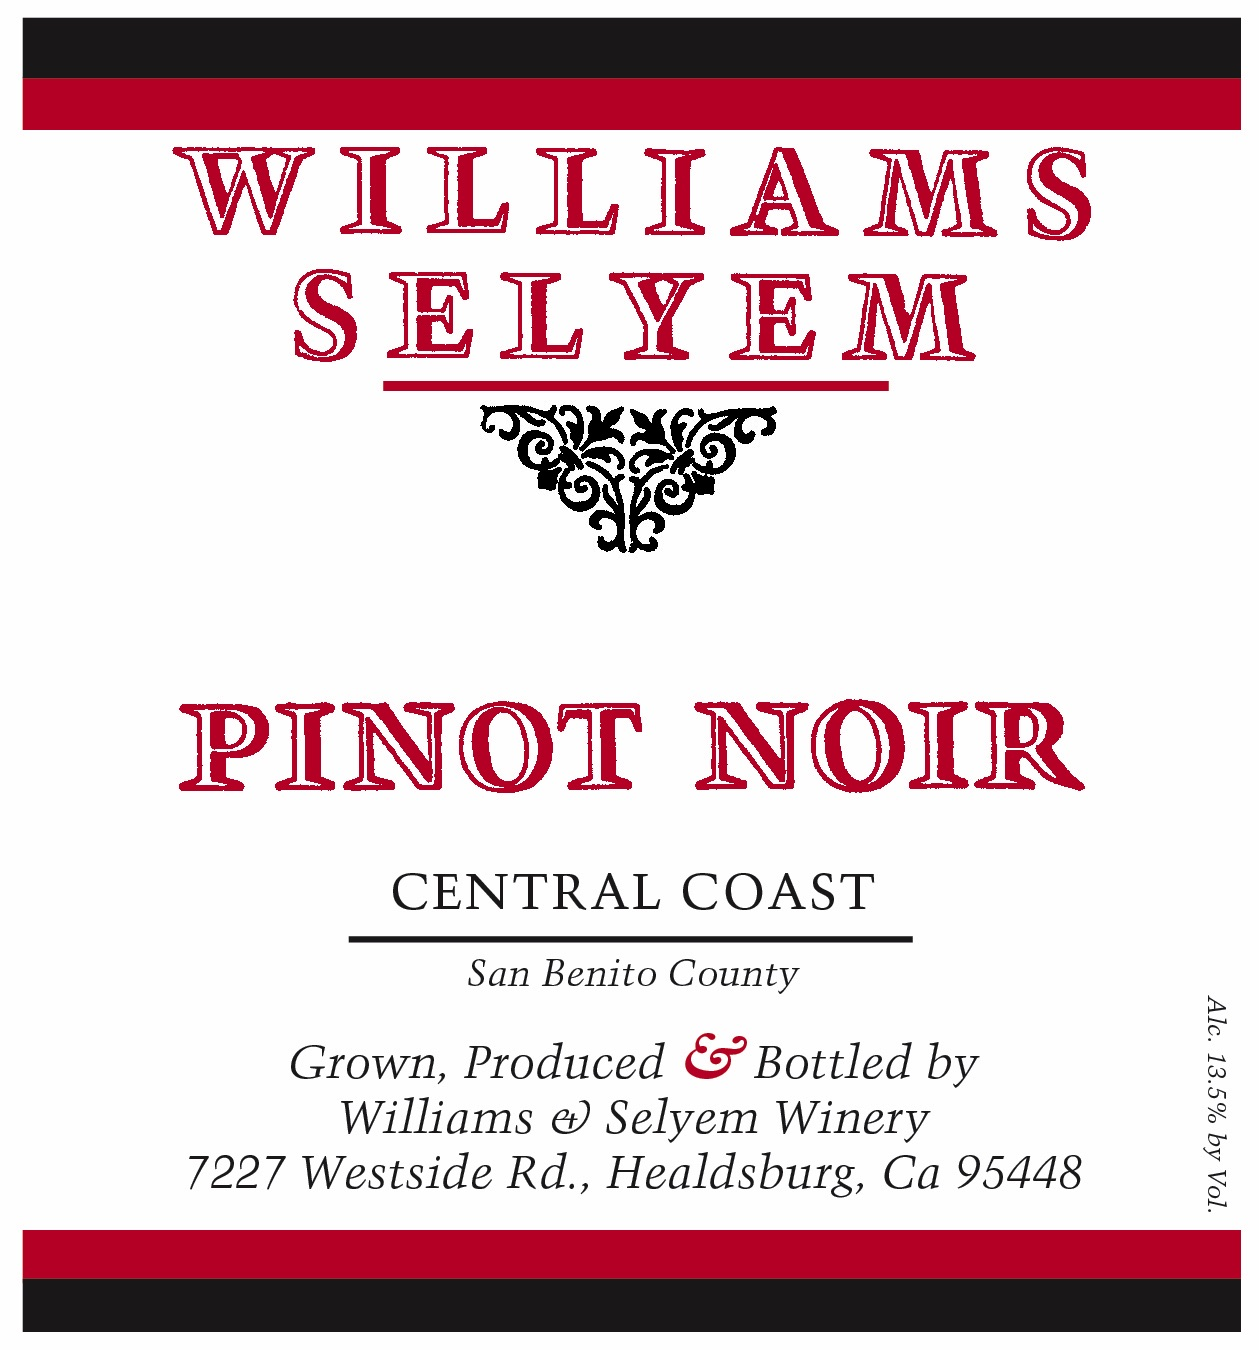 Williams Selyem Pinot Noir Central Coast